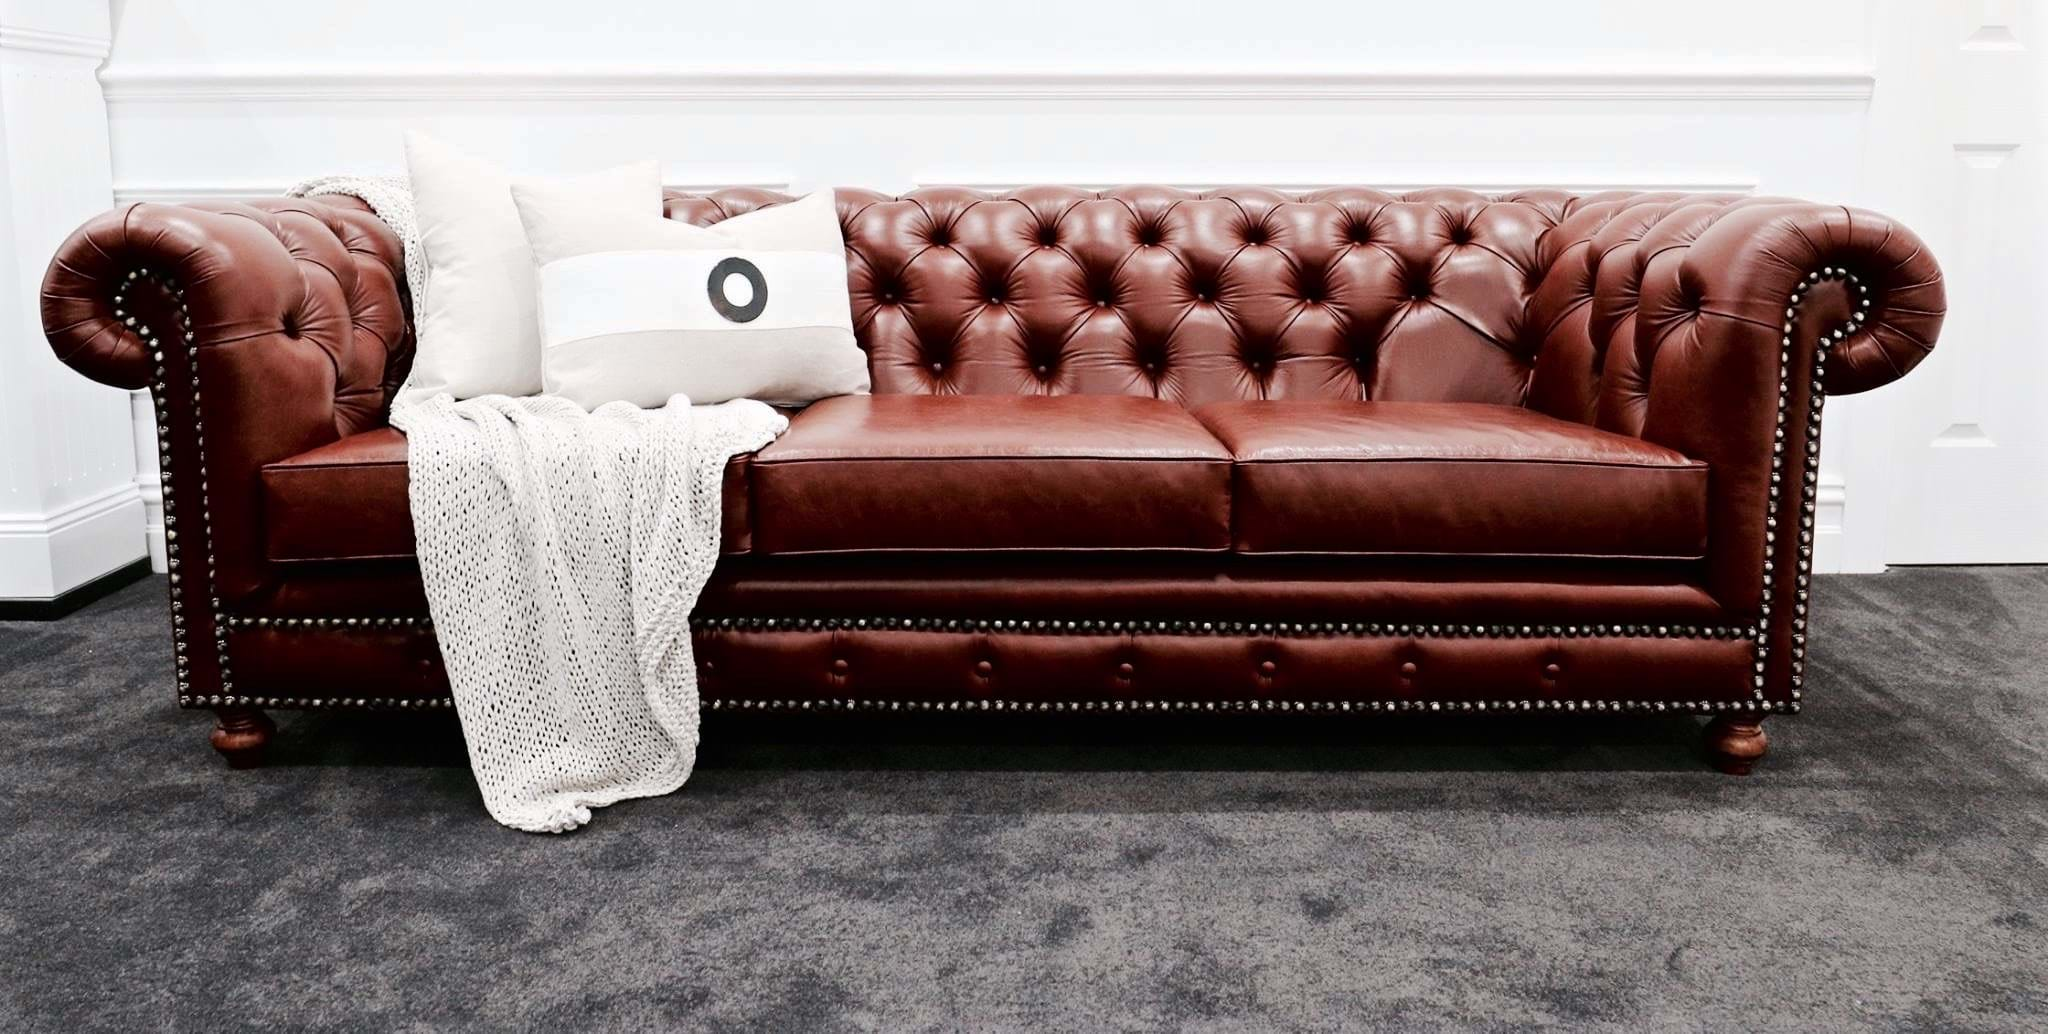 sofa, couch, contemporary, chesterfield, tufted, diamond buttoning, custom made, upholstery